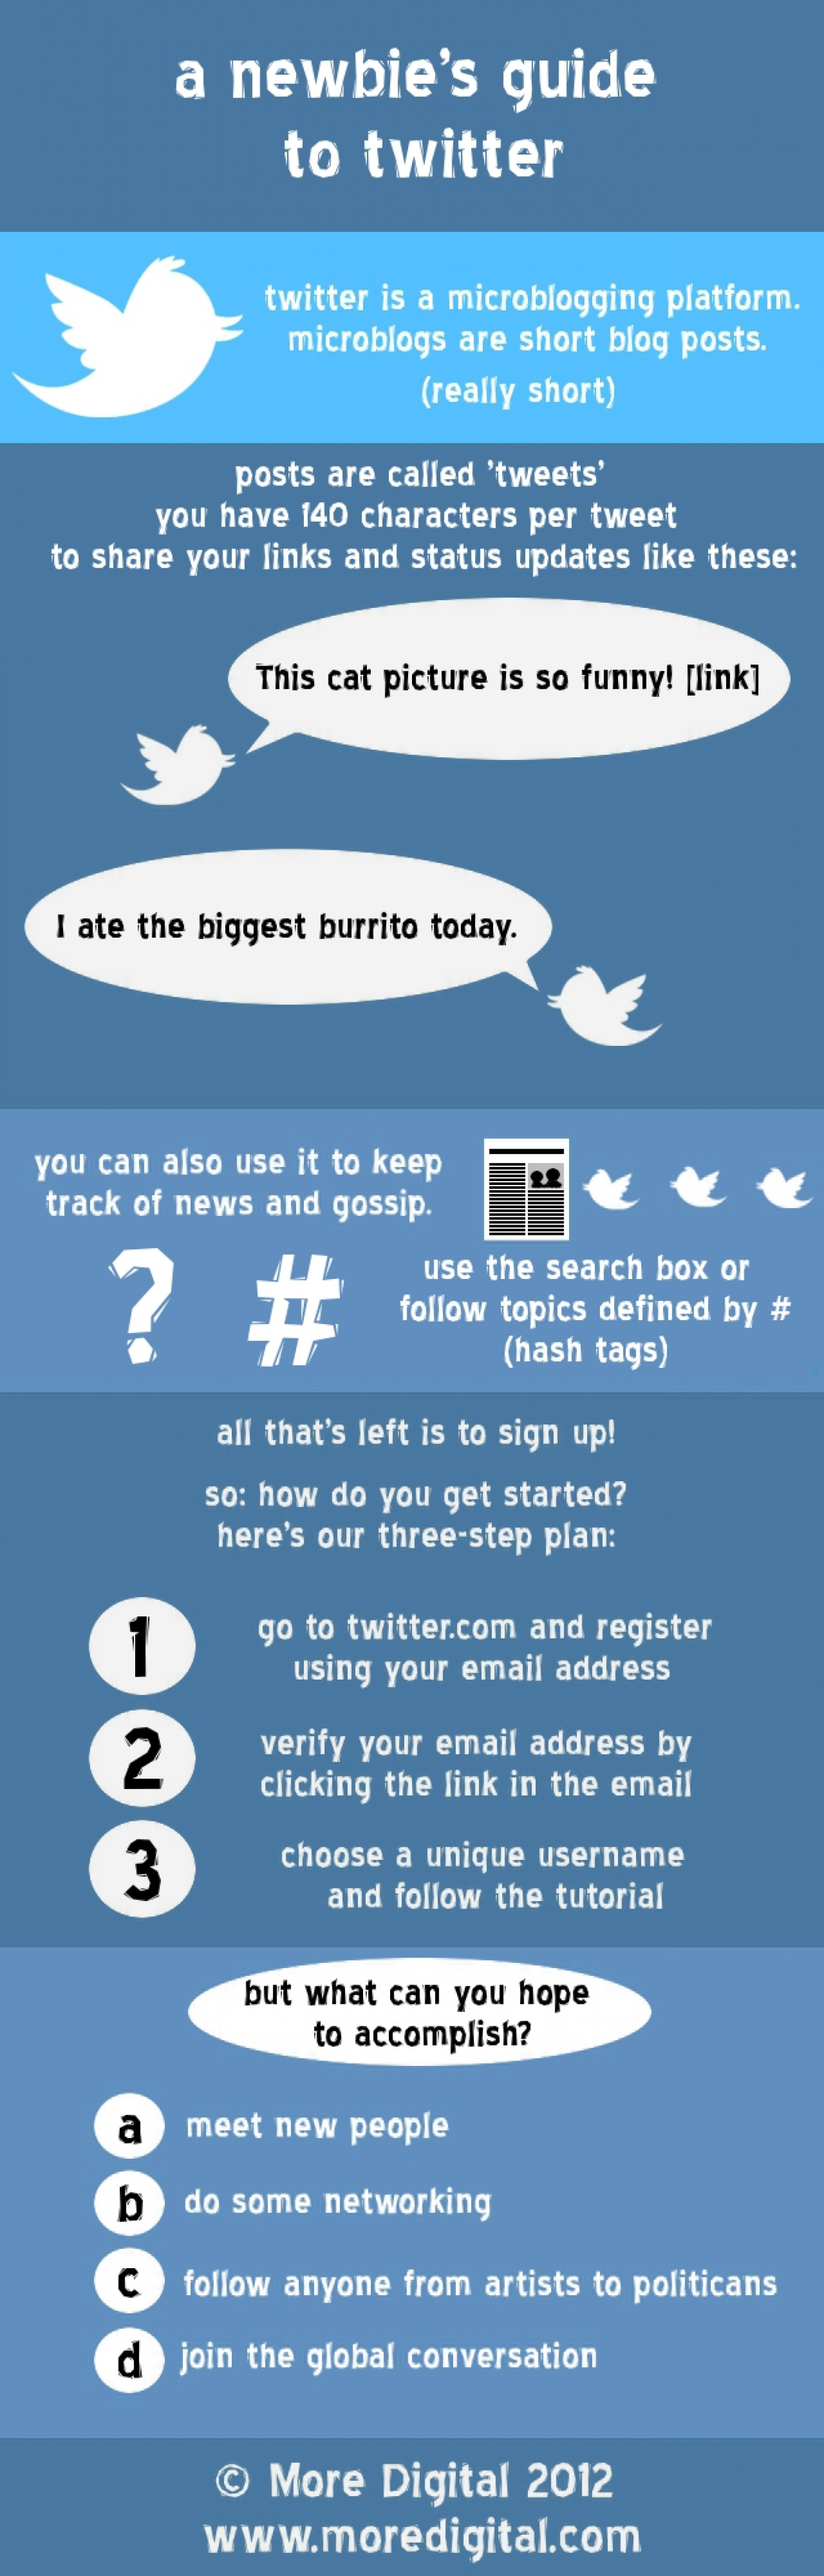 A Newbie's Guide to Twitter Infographic